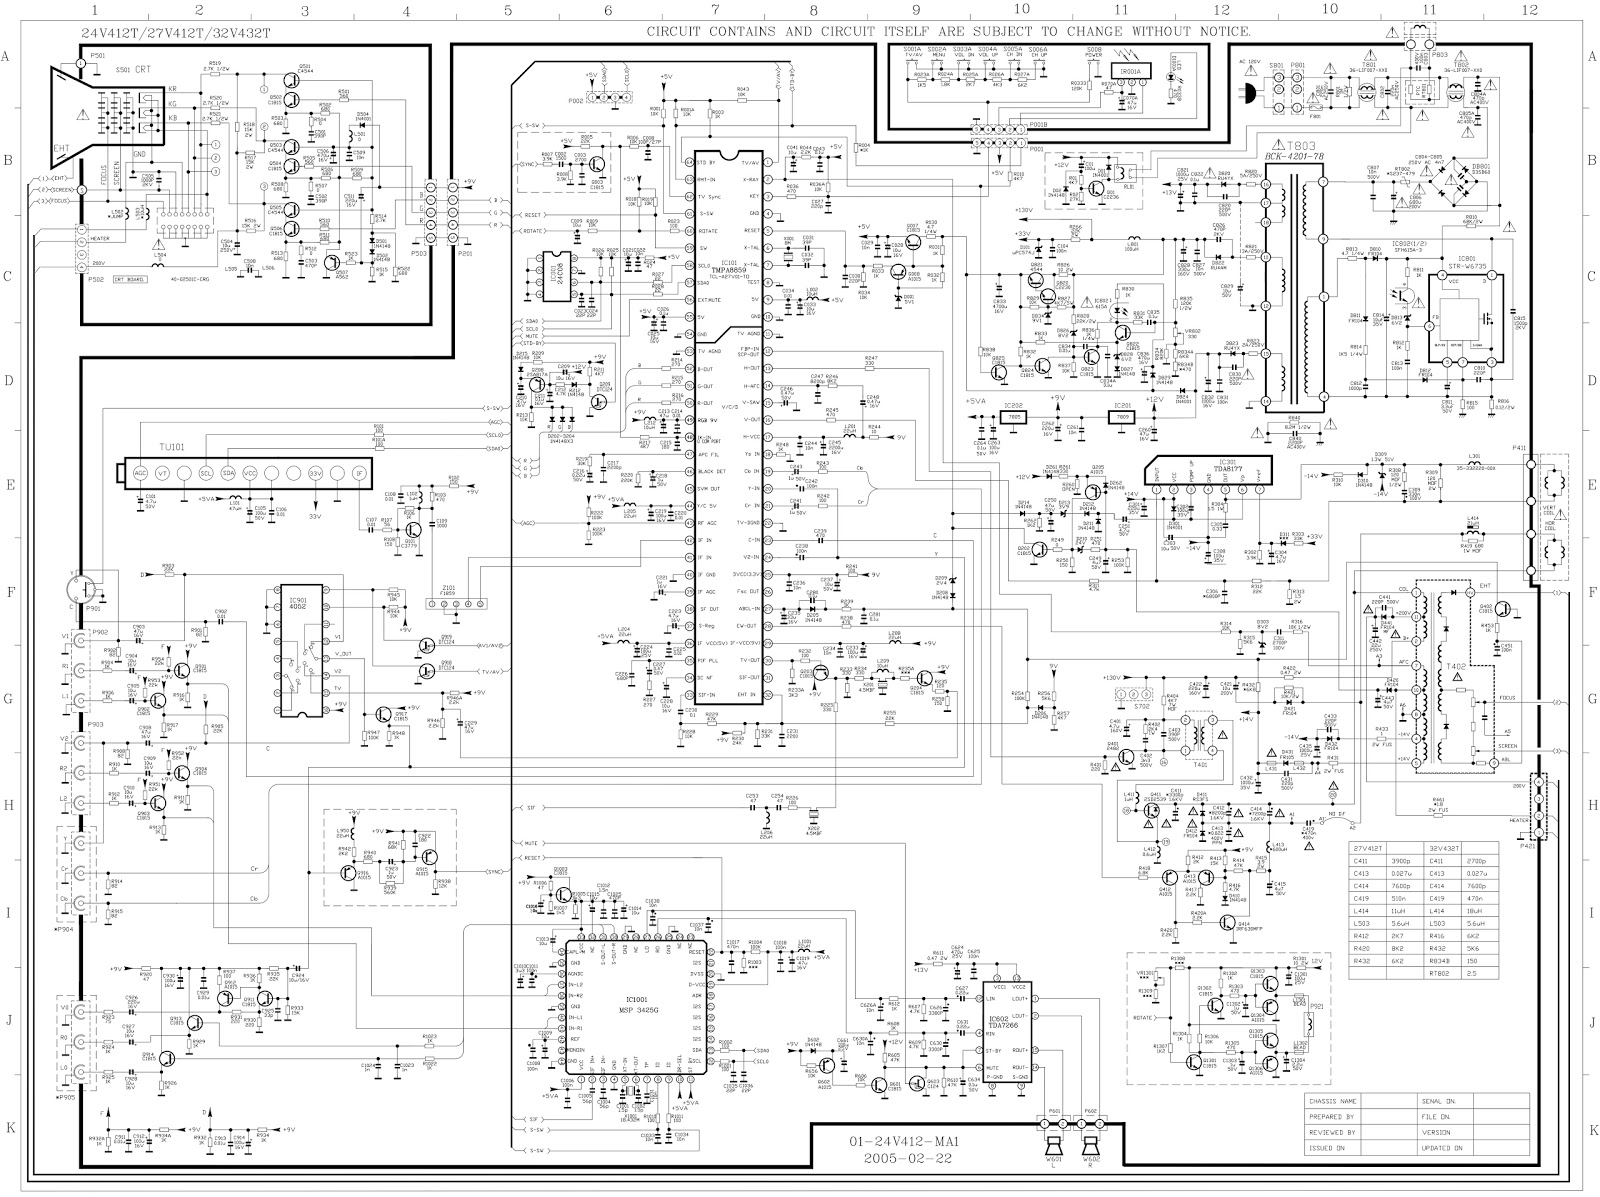 hight resolution of rca tv schematic diagram wiring diagram splitrca 24v12t rca 27v412t rca 32v432t crt tv schematic rca